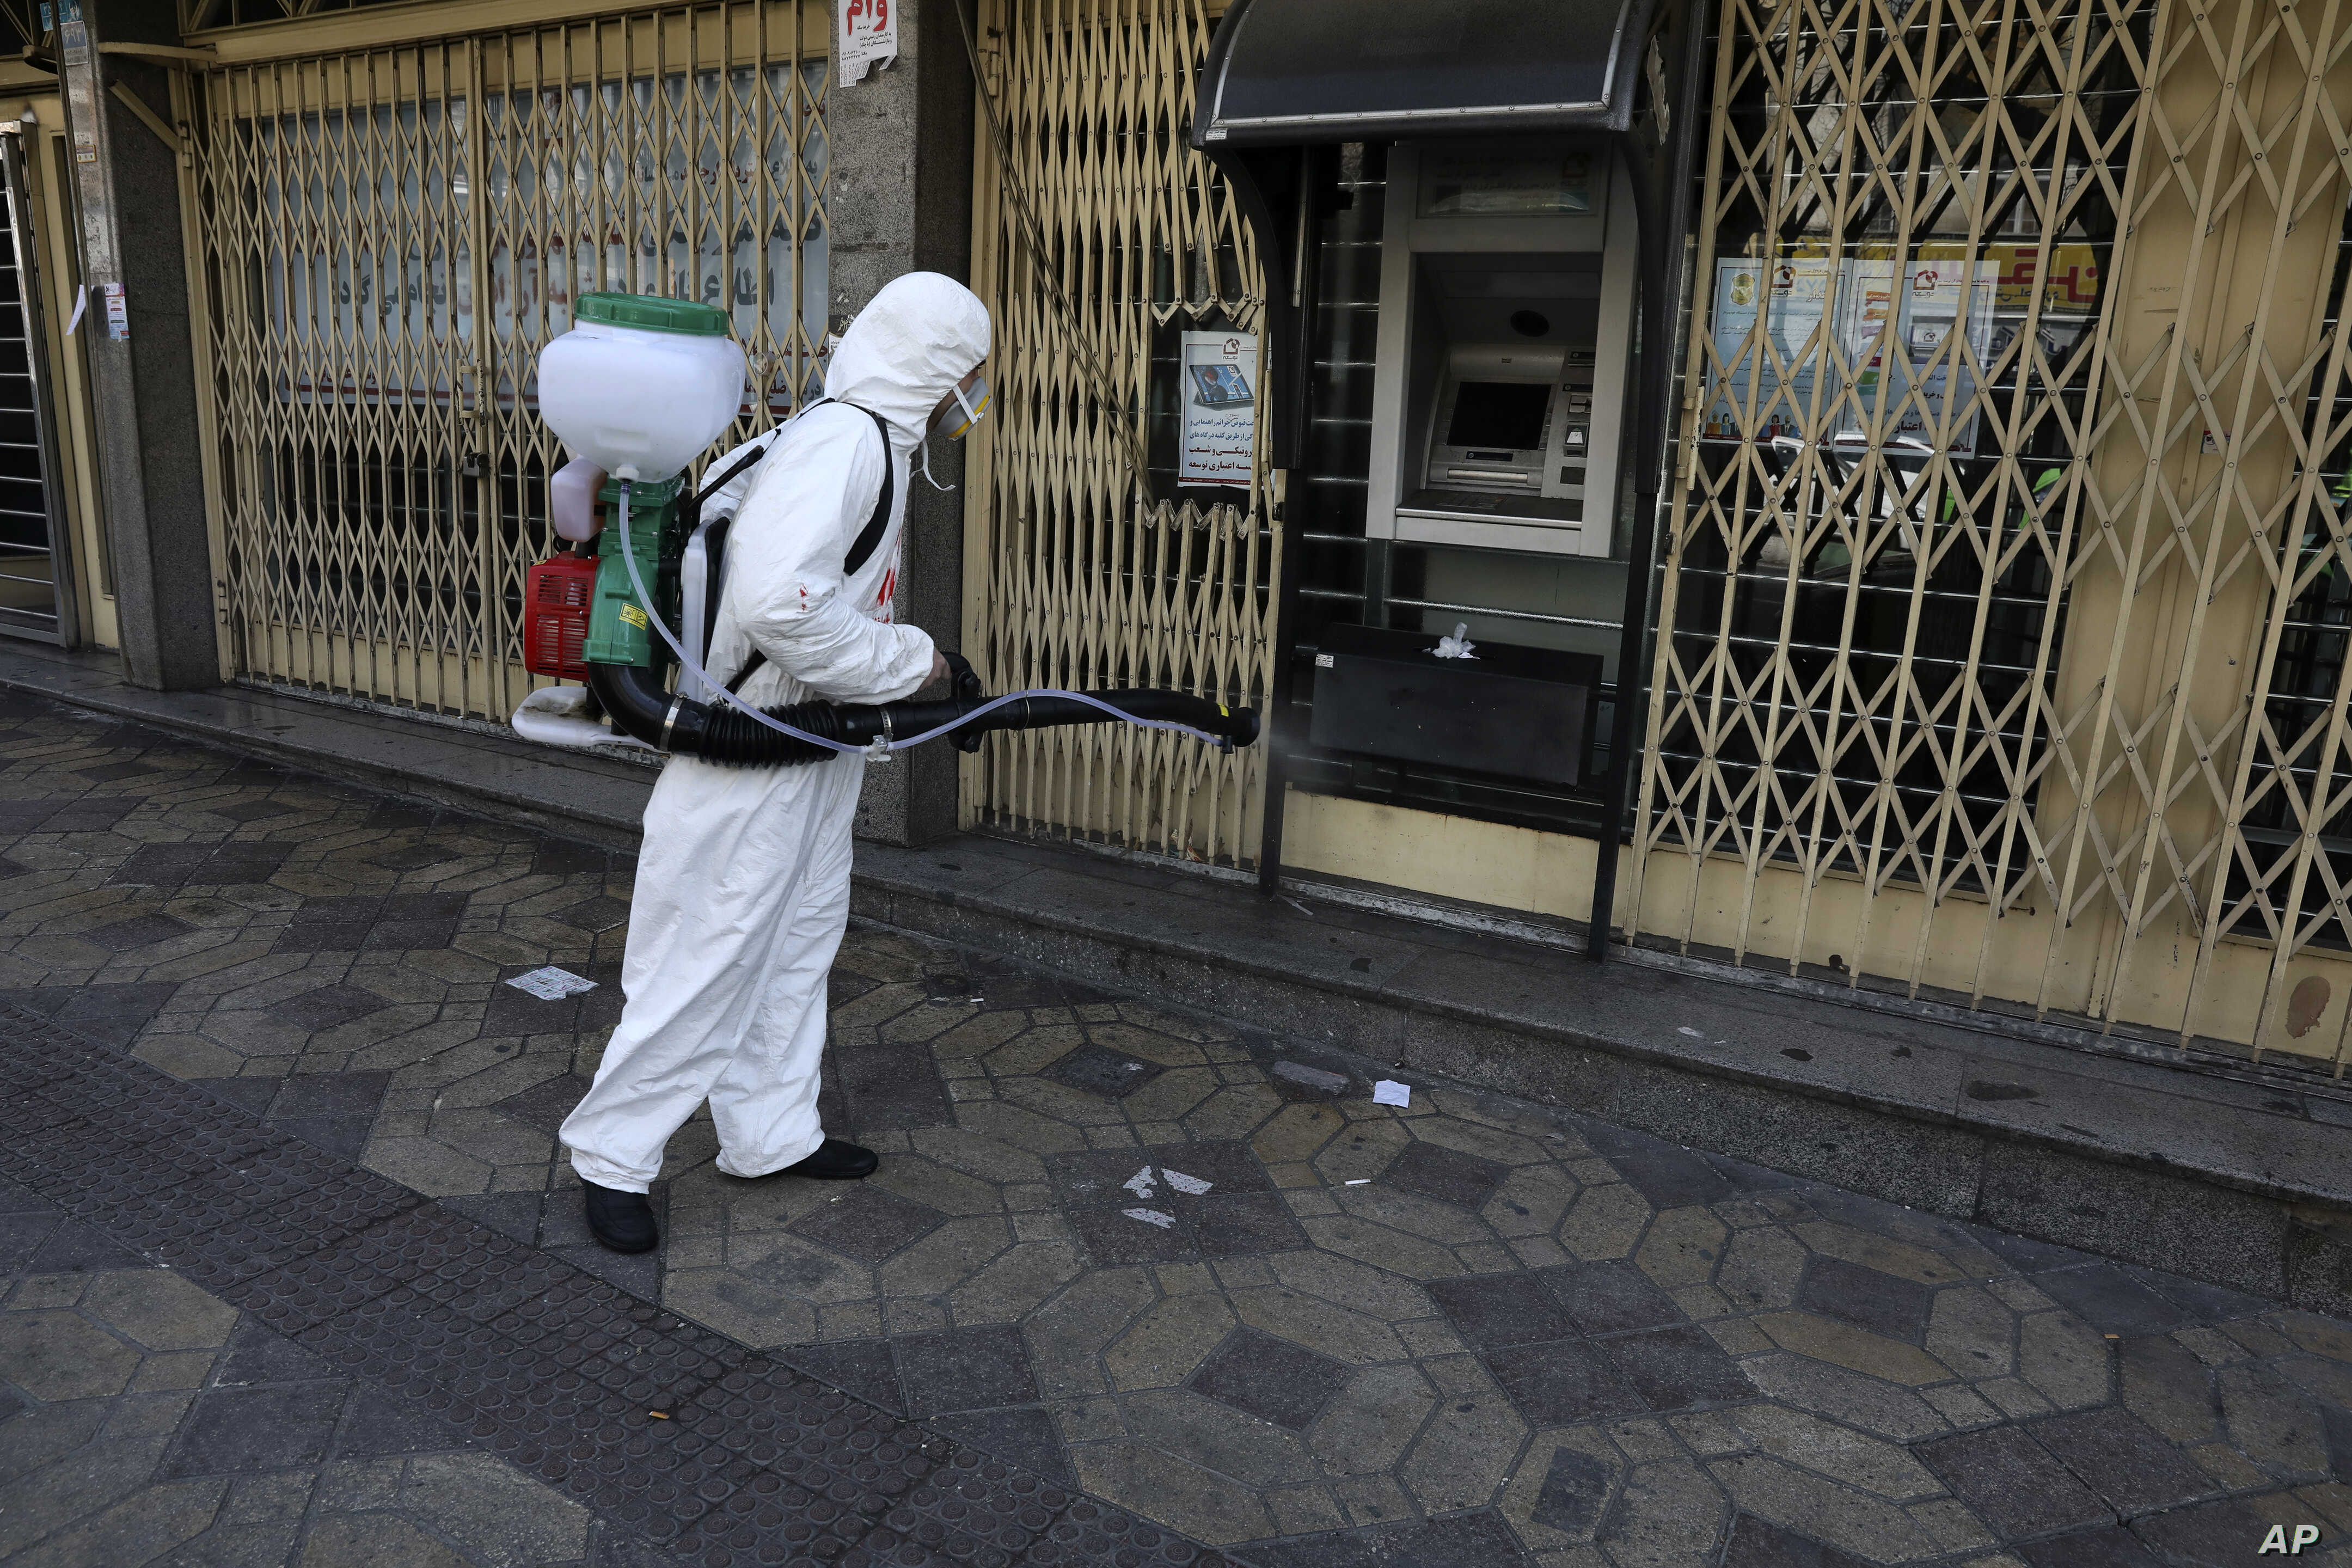 A firefighter disinfects an ATM machine to help prevent the spread of the new coronavirus in Tehran, Iran, March 5, 2020.